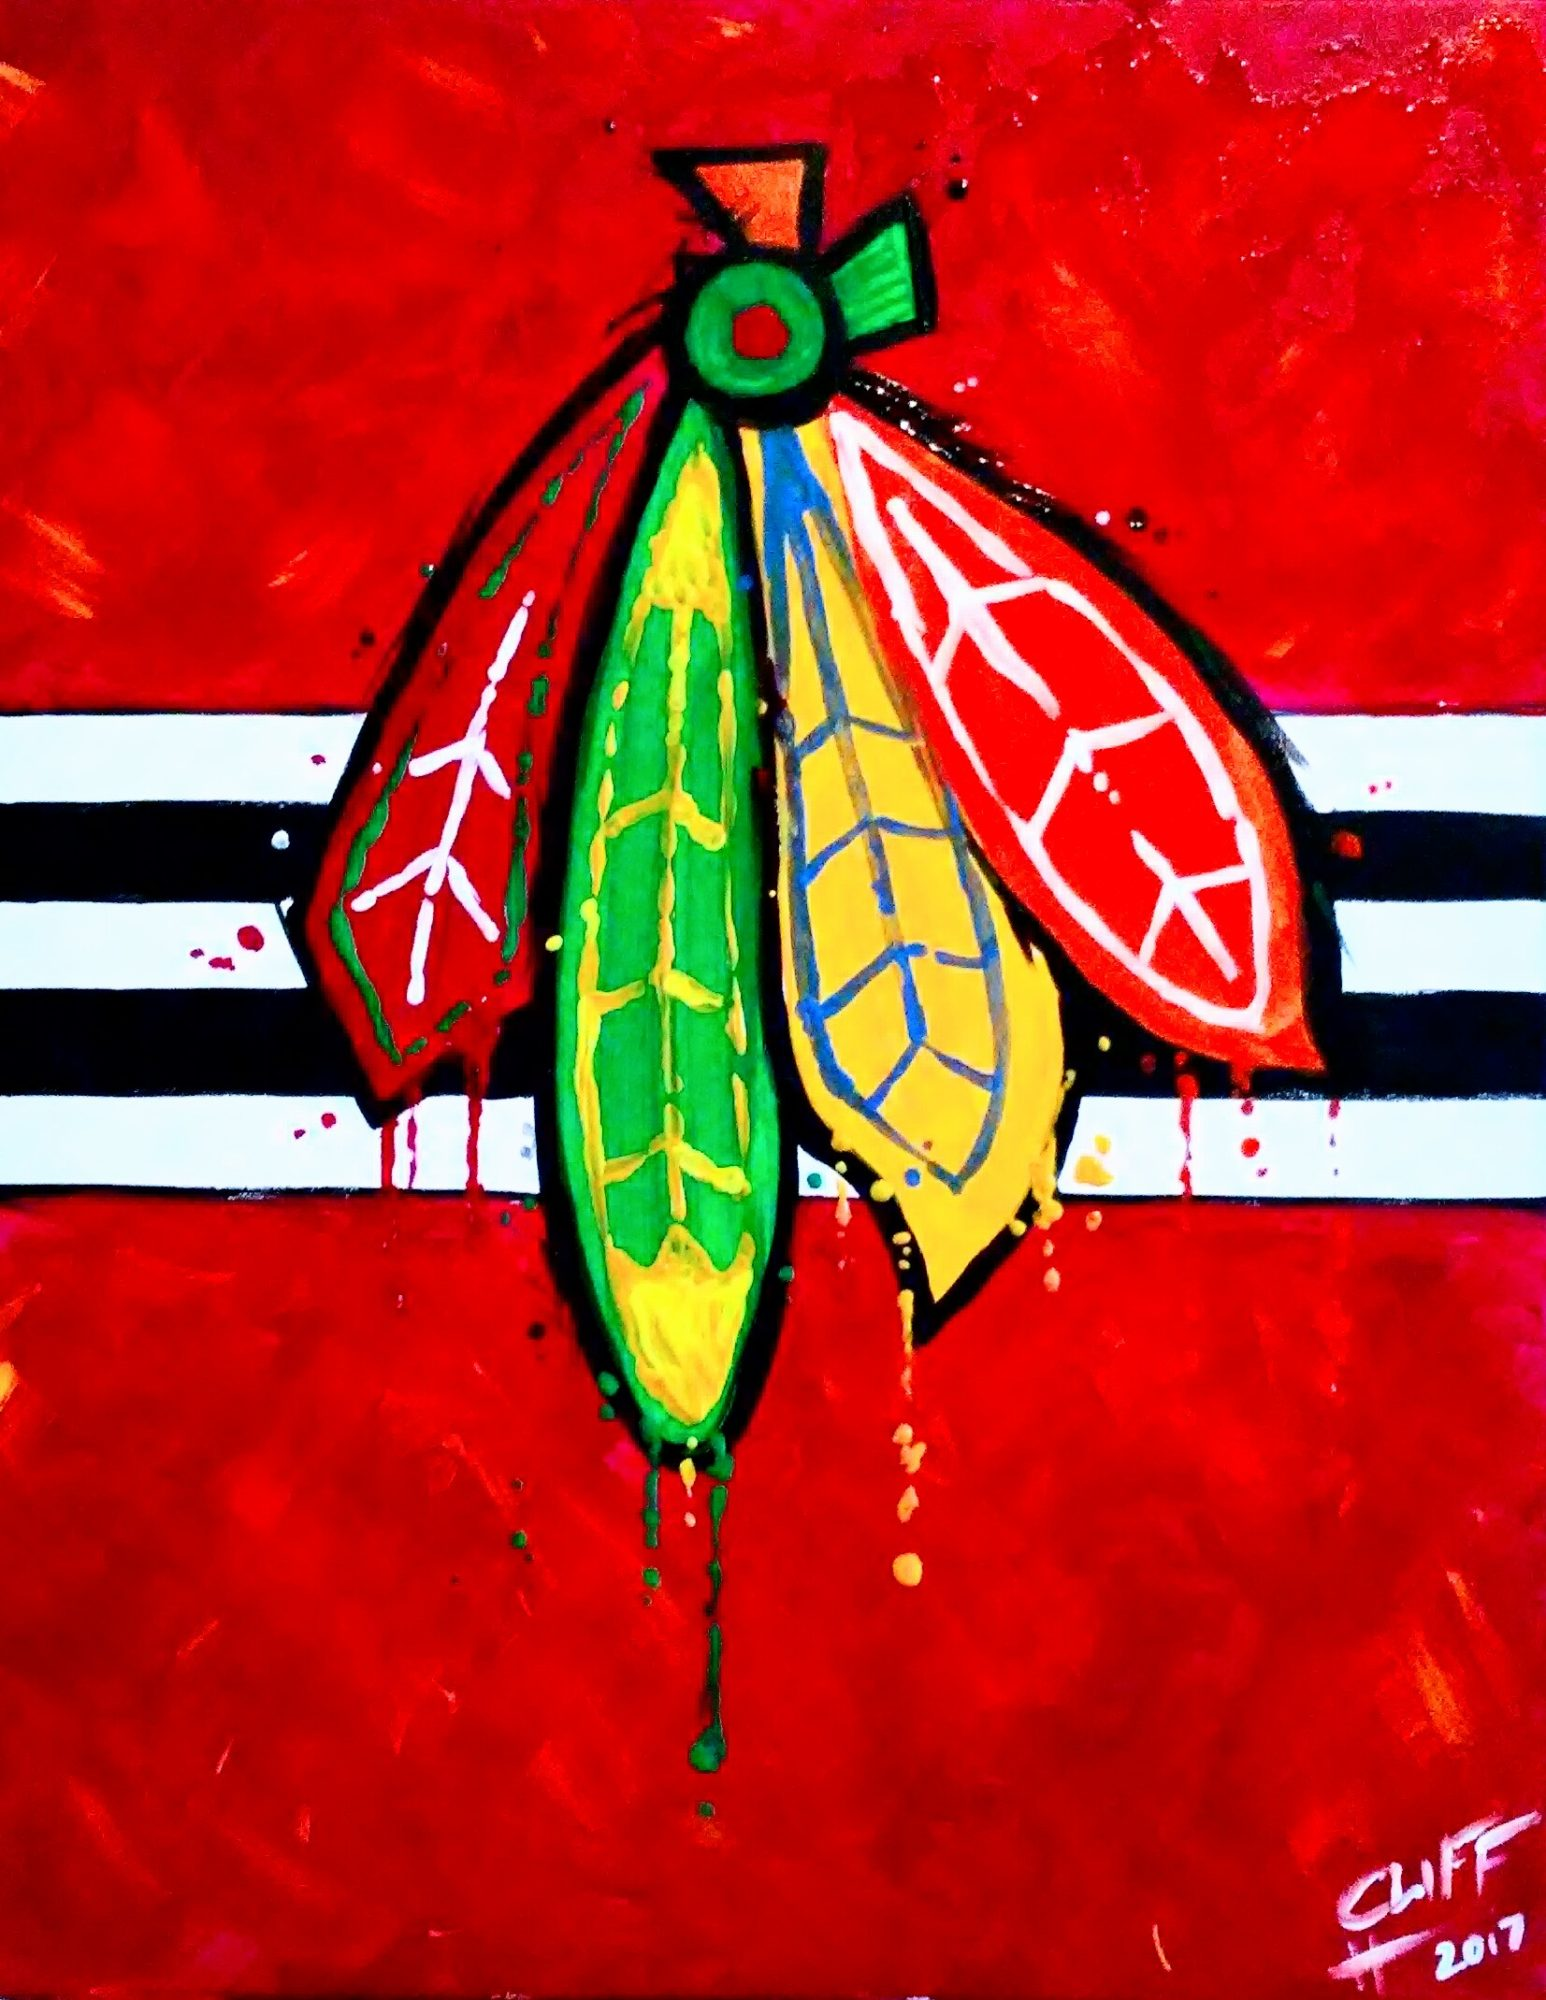 A61 Hawks Nation - Sip and Paint Parties in Bartlett, IL